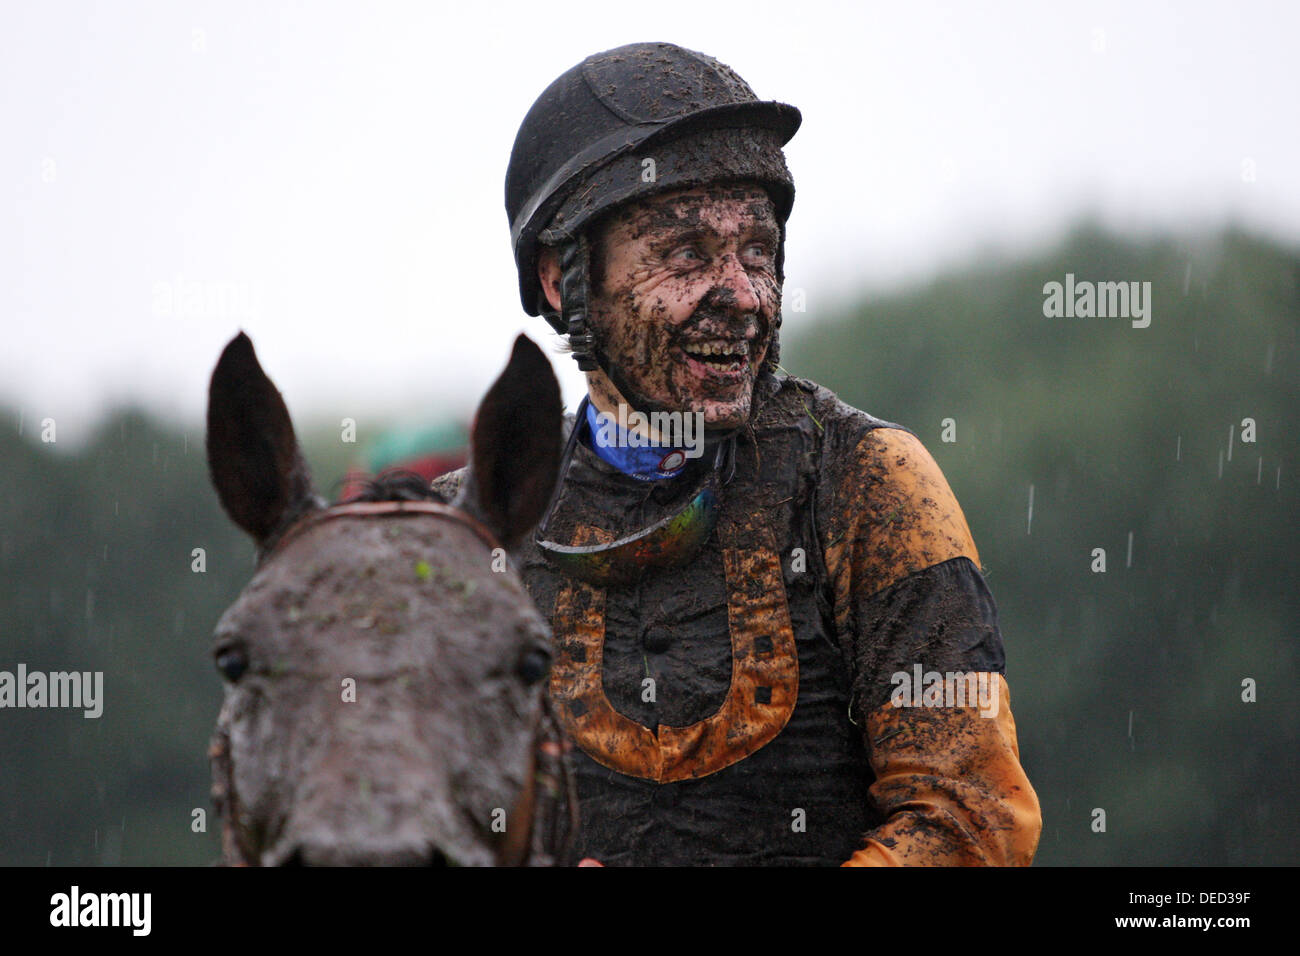 Hannover, Germany, Jockey laughs with dirt smeared face at the races - Stock Image